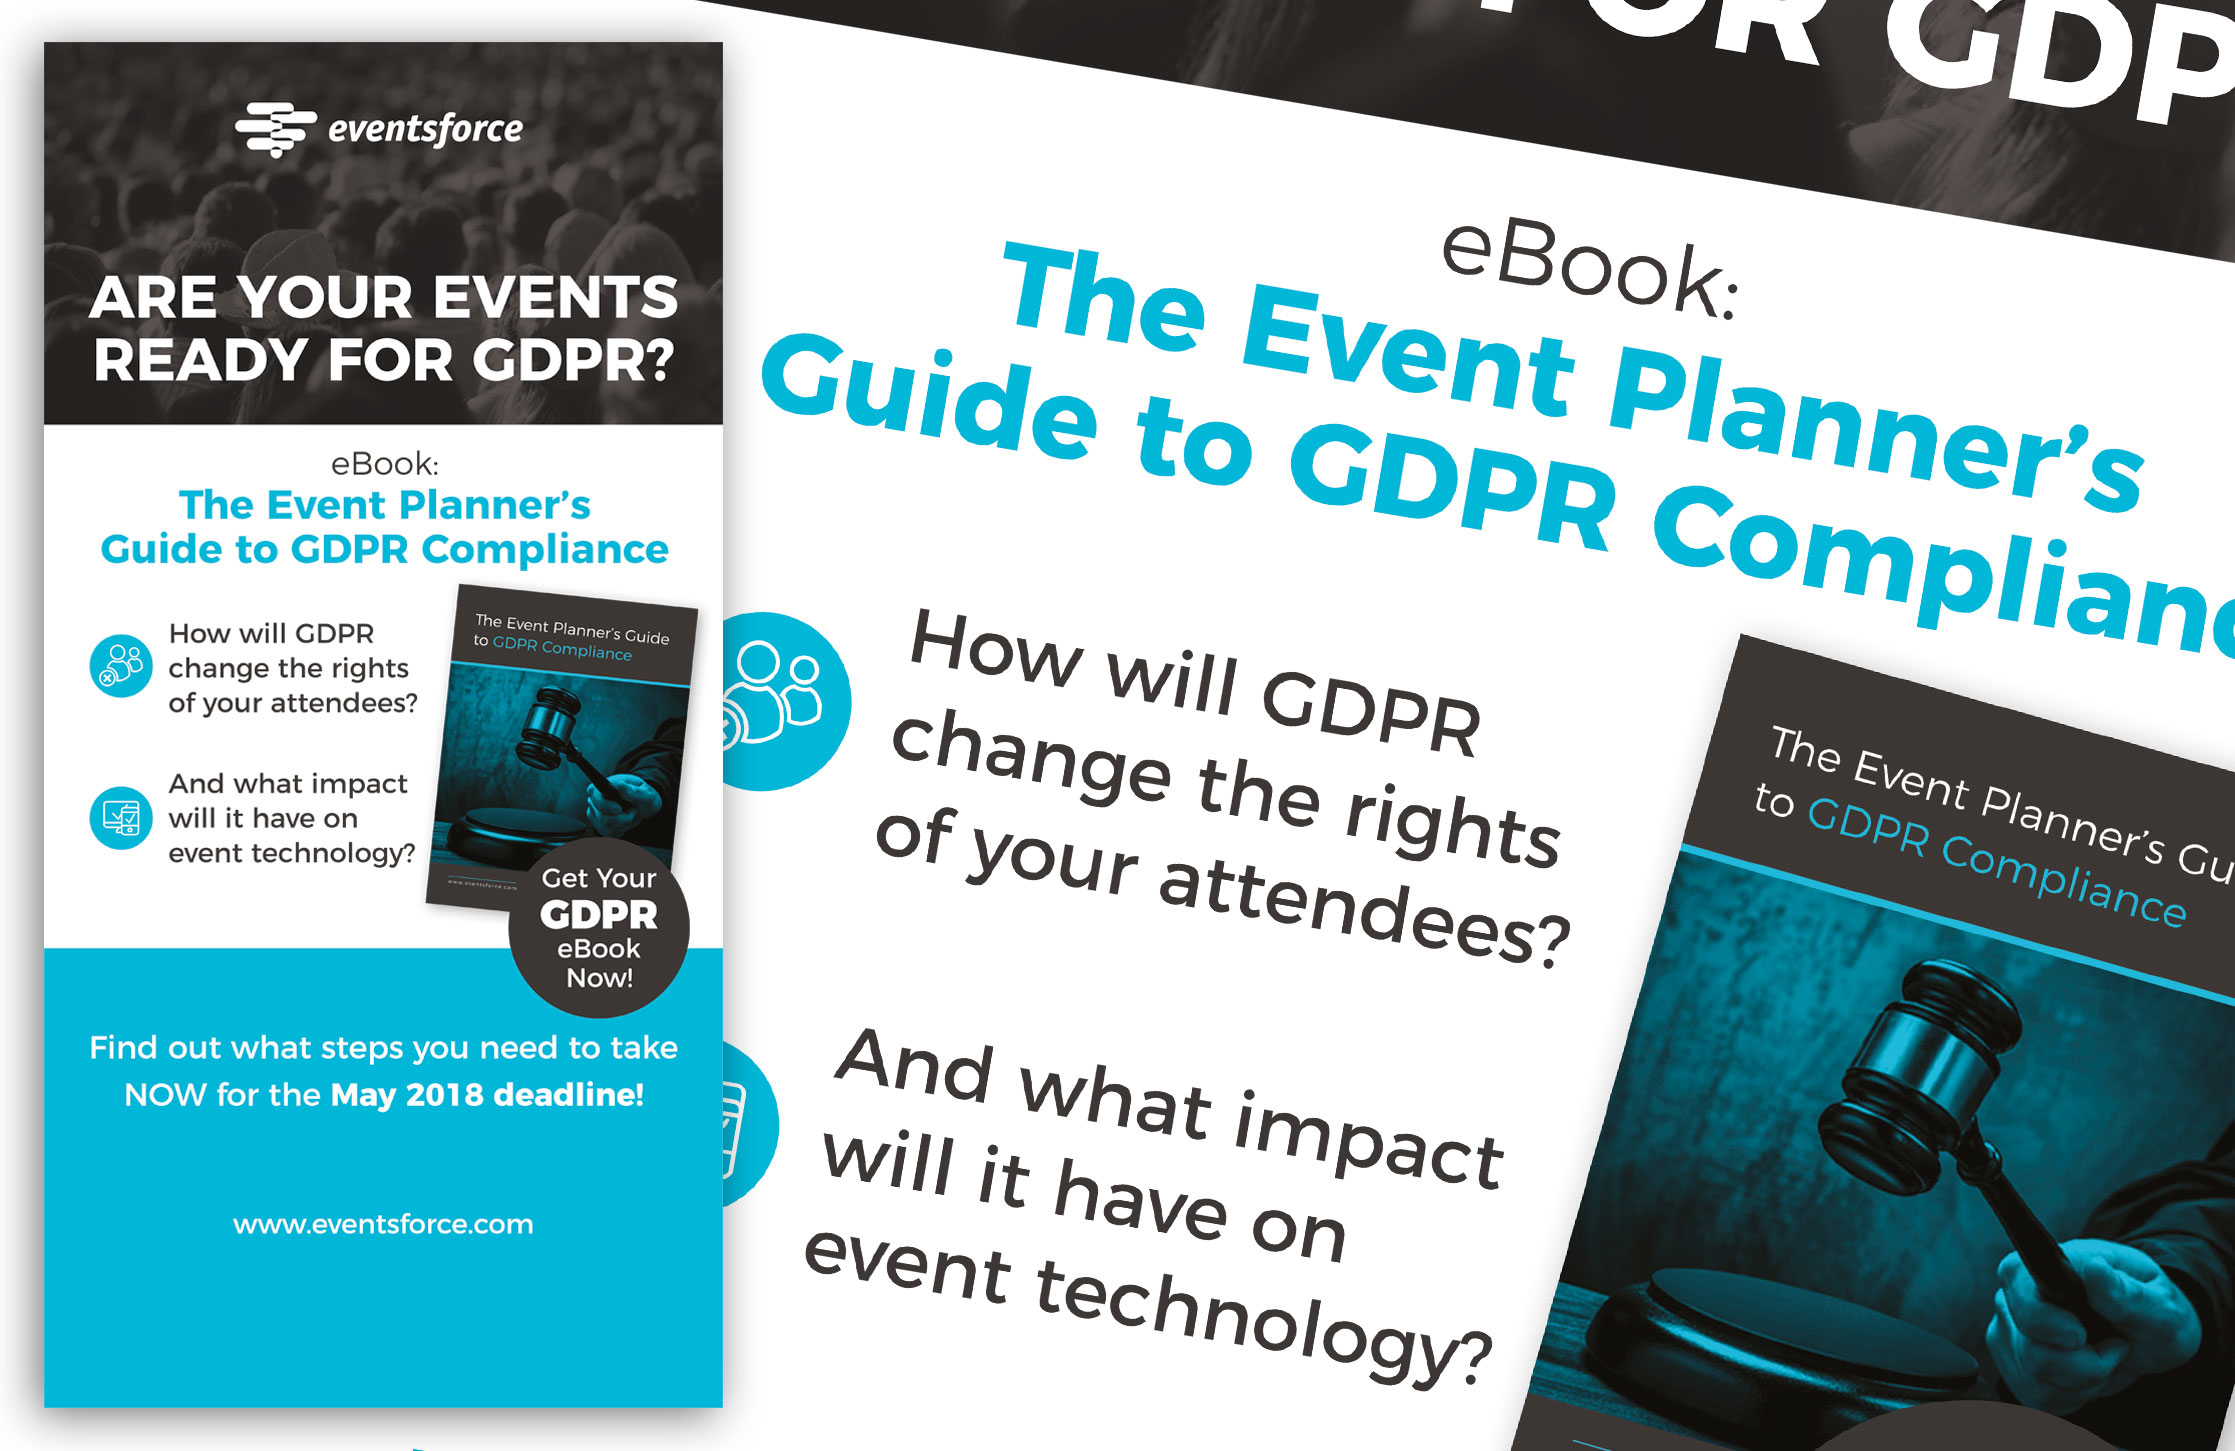 Design and Artwork of a pop-up stand to promote the Eventsforce GDPR ebook to outline recent legislation.